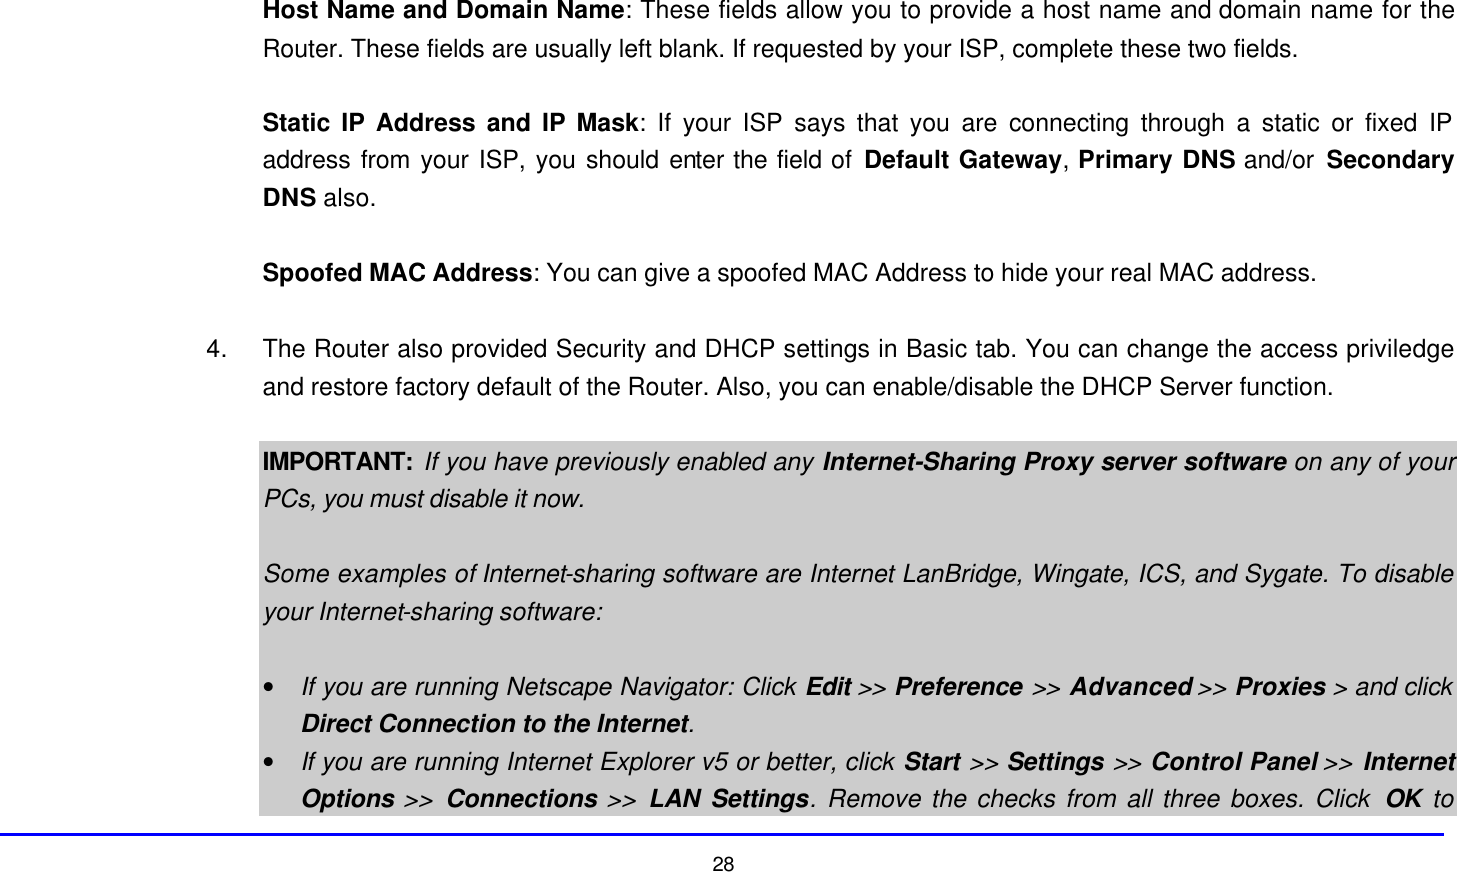 28  Host Name and Domain Name: These fields allow you to provide a host name and domain name for the Router. These fields are usually left blank. If requested by your ISP, complete these two fields.  Static IP Address and IP Mask: If your ISP says that you are connecting through a static or fixed IP address from your ISP, you should enter the field of Default Gateway, Primary DNS and/or  Secondary DNS also.  Spoofed MAC Address: You can give a spoofed MAC Address to hide your real MAC address.  4. The Router also provided Security and DHCP settings in Basic tab. You can change the access priviledge and restore factory default of the Router. Also, you can enable/disable the DHCP Server function.    IMPORTANT: If you have previously enabled any Internet-Sharing Proxy server software on any of your PCs, you must disable it now.  Some examples of Internet-sharing software are Internet LanBridge, Wingate, ICS, and Sygate. To disable your Internet-sharing software:  • If you are running Netscape Navigator: Click Edit >> Preference >> Advanced >> Proxies > and click Direct Connection to the Internet. • If you are running Internet Explorer v5 or better, click Start >> Settings >> Control Panel >> Internet Options >> Connections >> LAN Settings. Remove the checks from all three boxes. Click  OK to